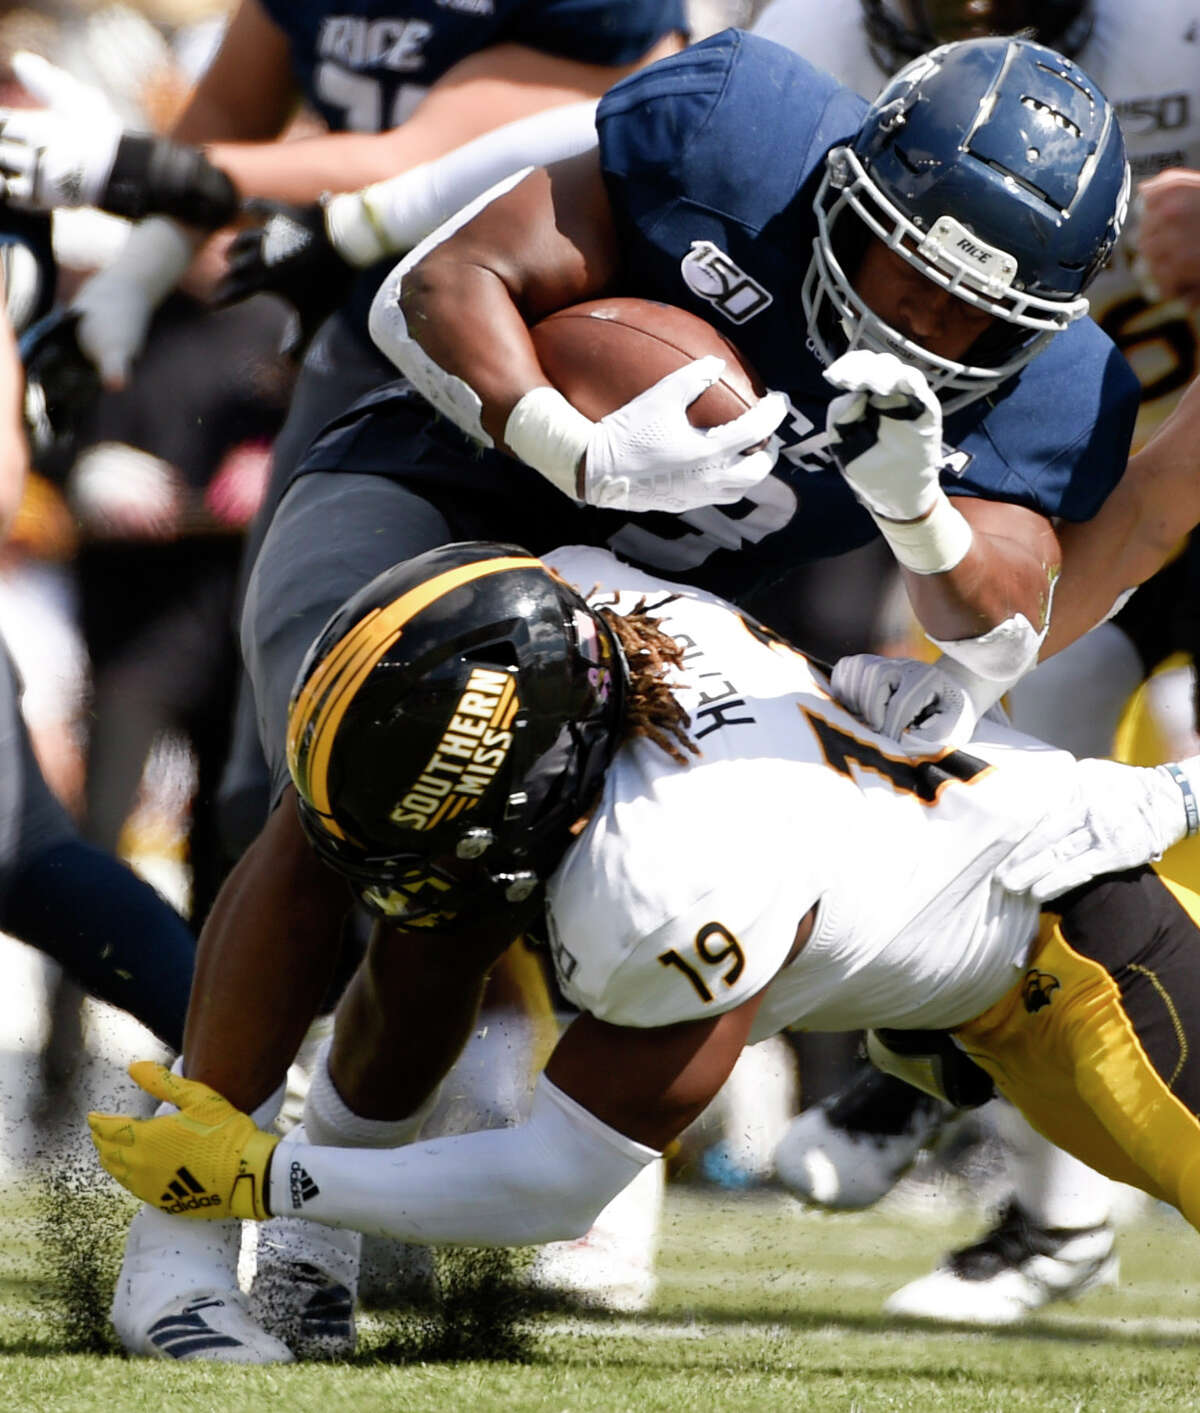 Rice running back Nahshon Ellerbe, top, is tackled by Southern Miss defensive back Ky'el Hemby during the first half of an NCAA college football game, Saturday, Oct. 26, 2019, in Houston.